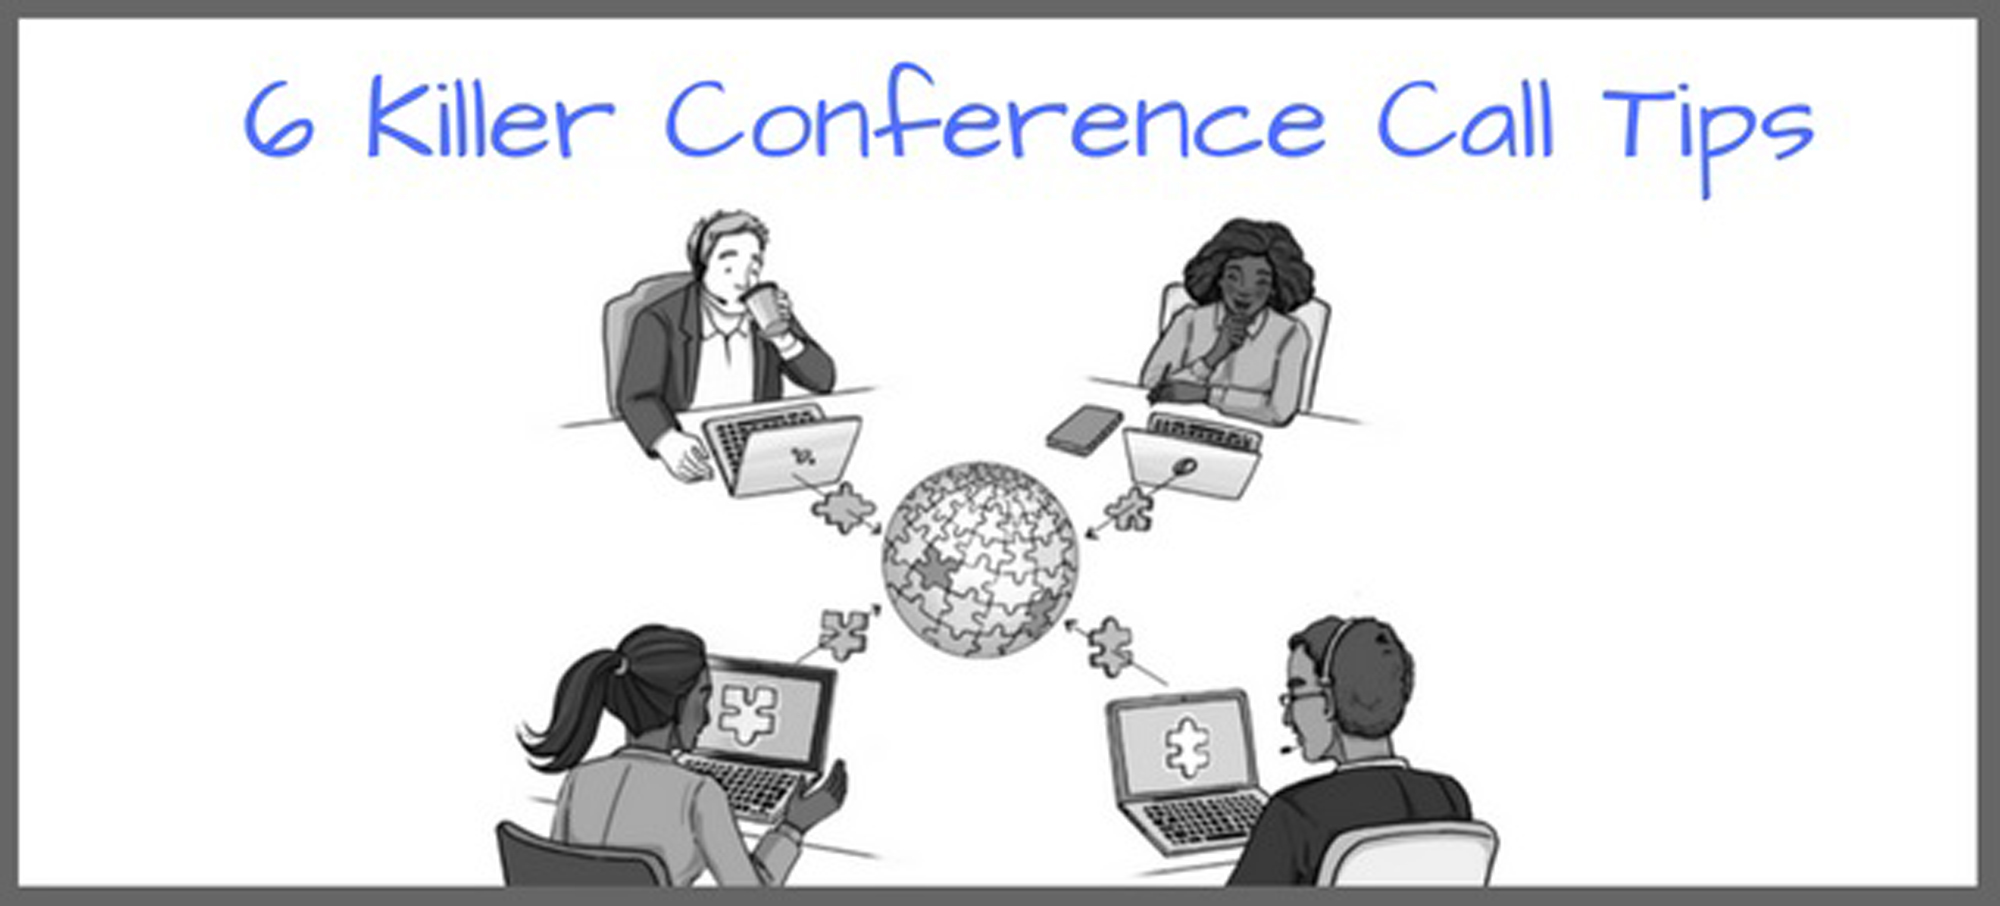 6 Killer Conference Call Tips To Run Effective Meetings